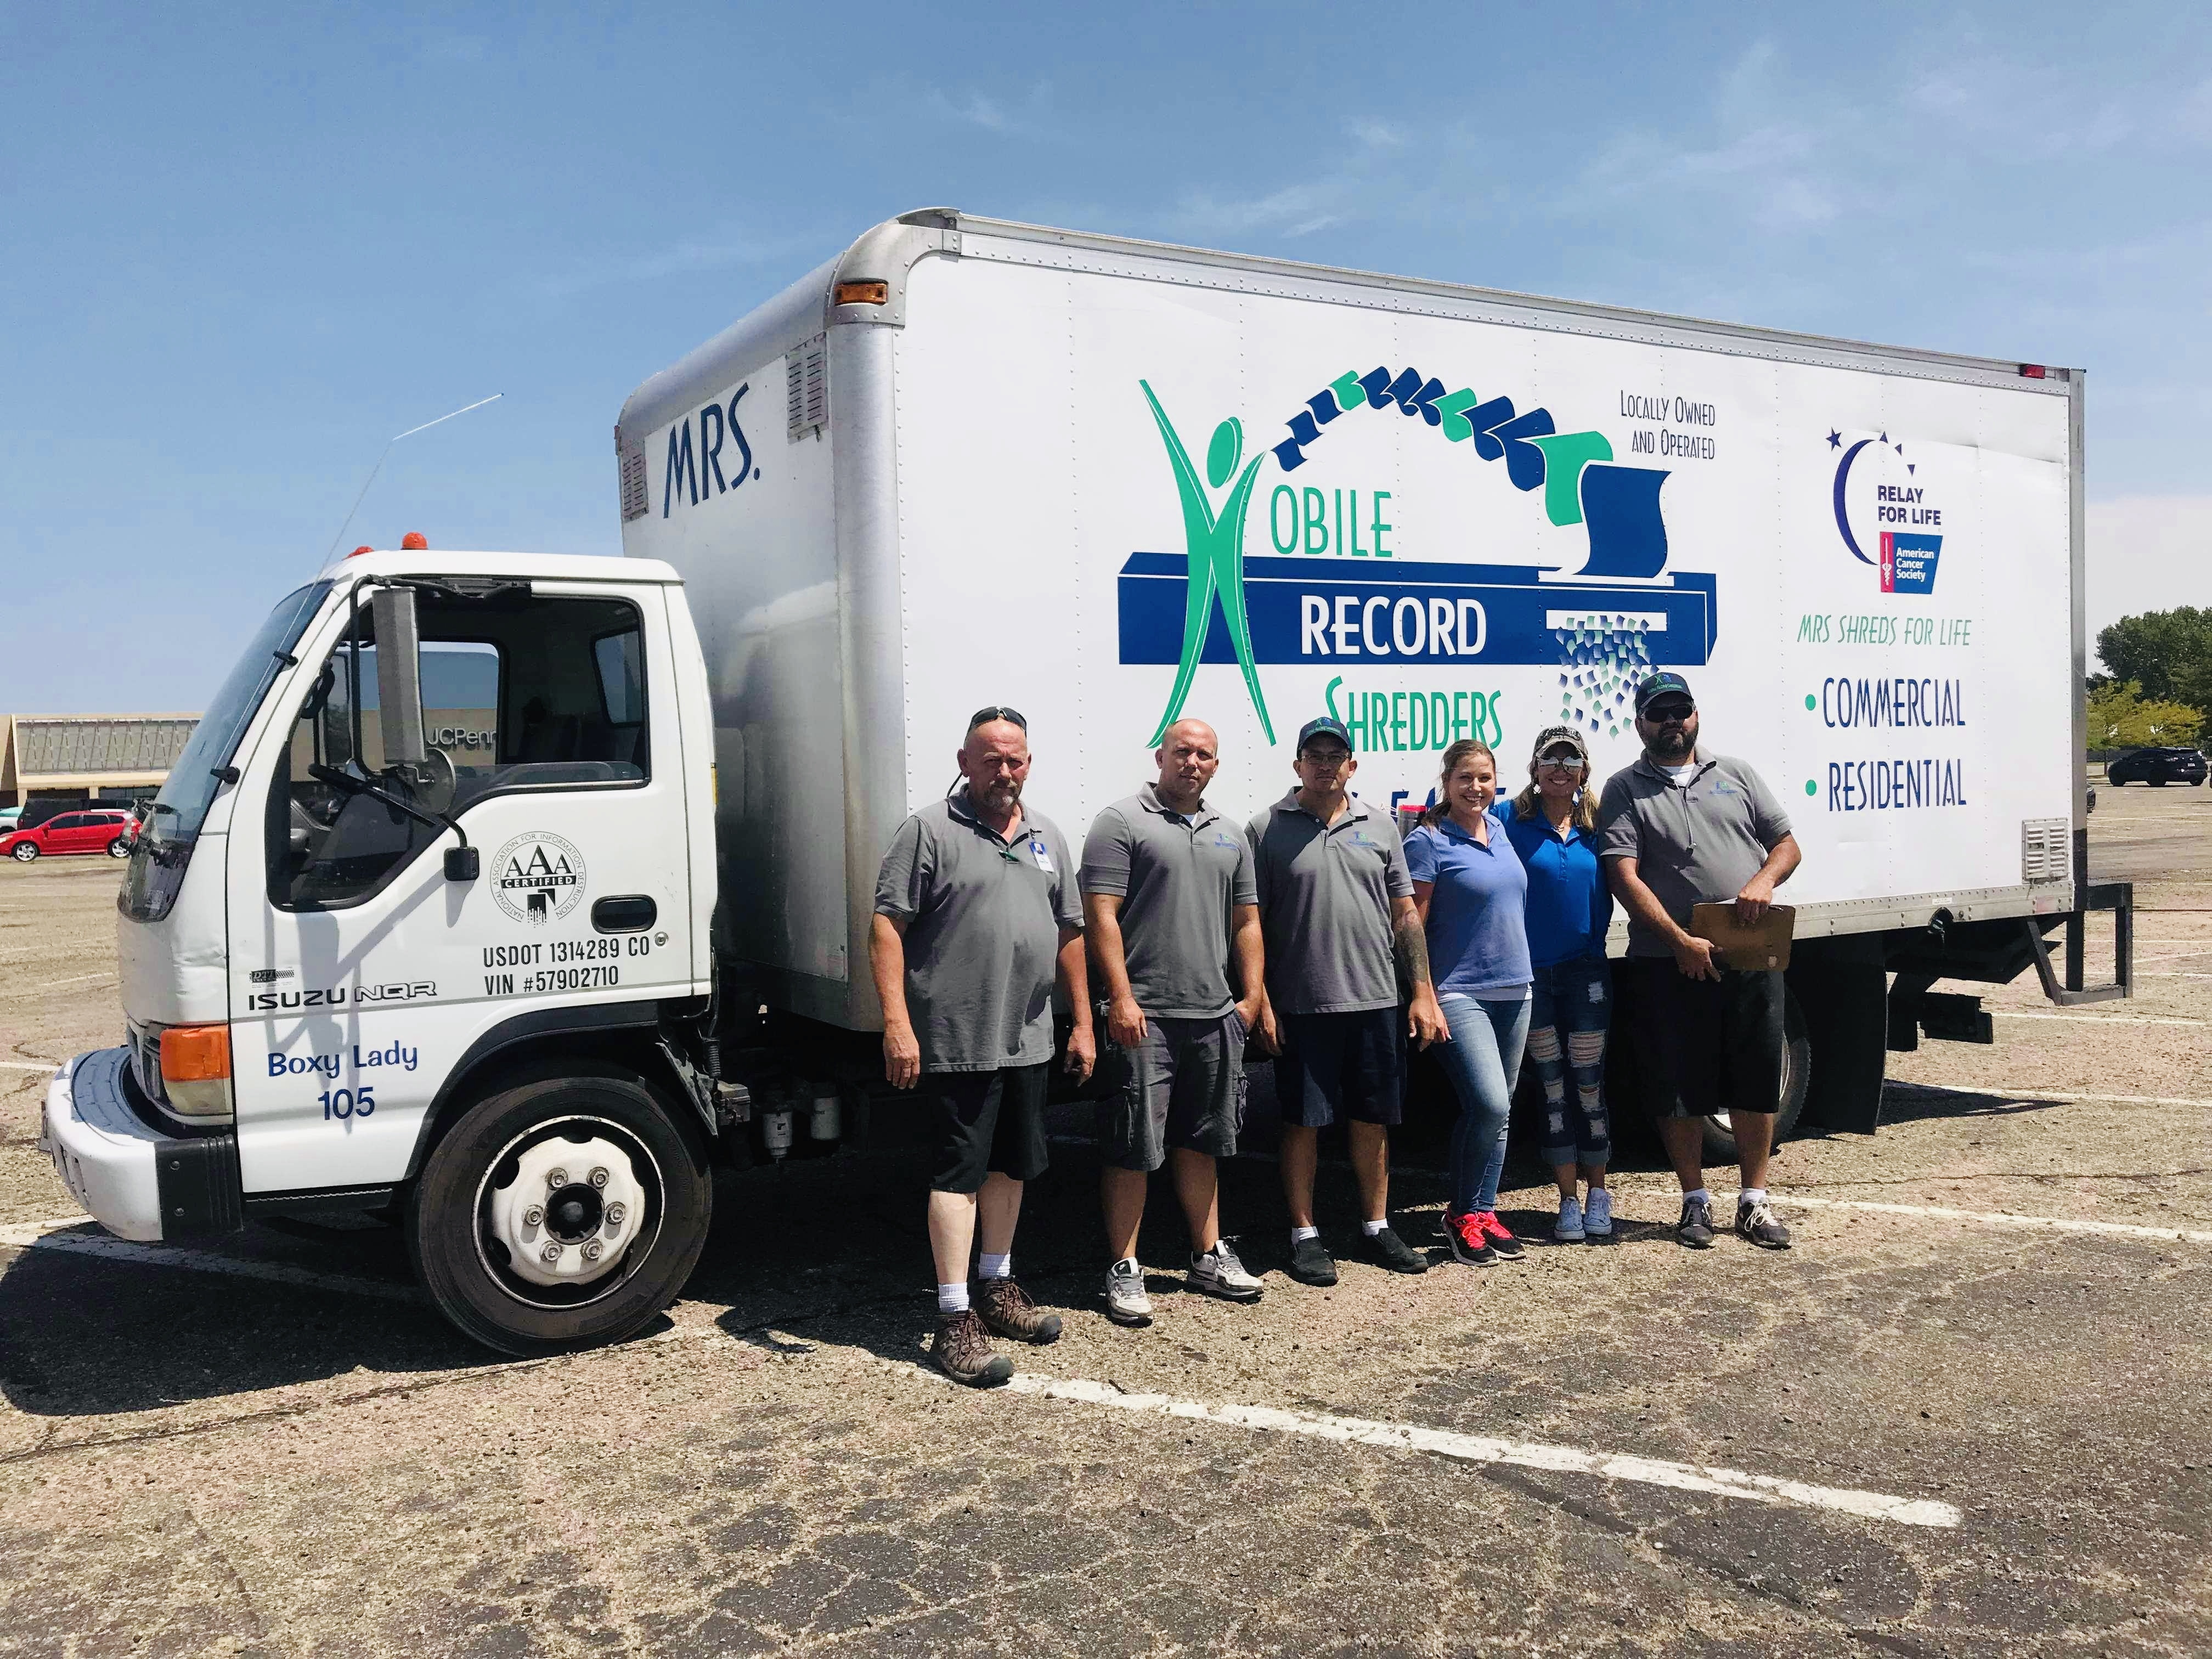 2019 Free Community Shred Events | Mobile Record Shredders